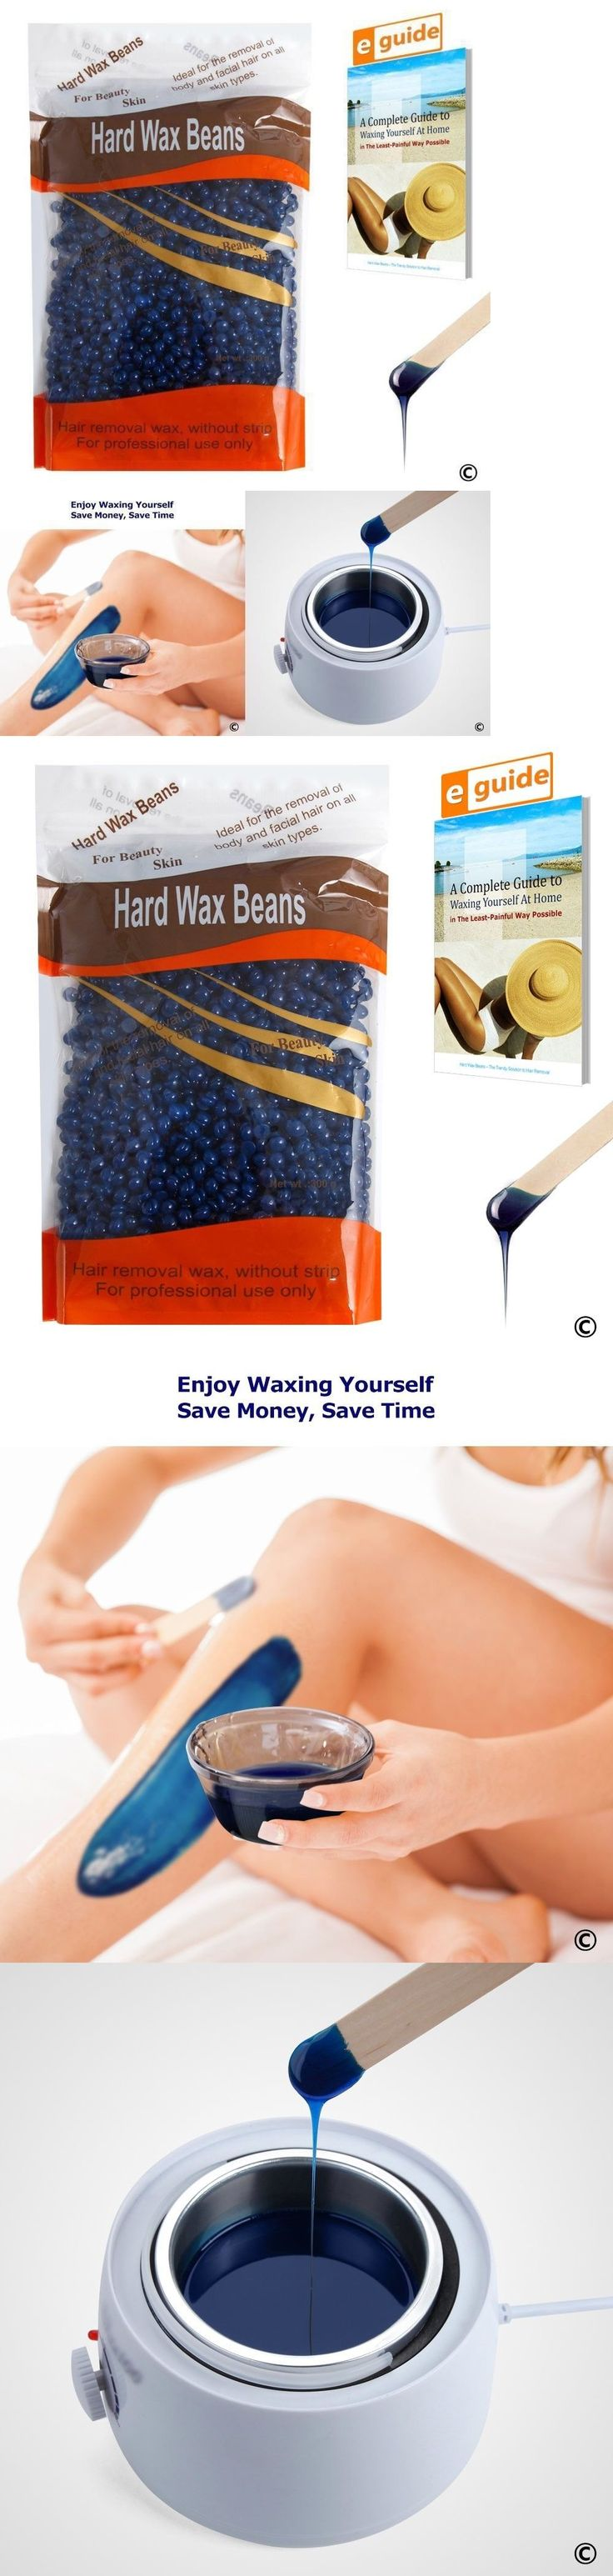 Shaving: Hair Removal Painless Hard Wax Beans Stripless Full Body Depilatory Wax Beads -> BUY IT NOW ONLY: $38.48 on eBay!